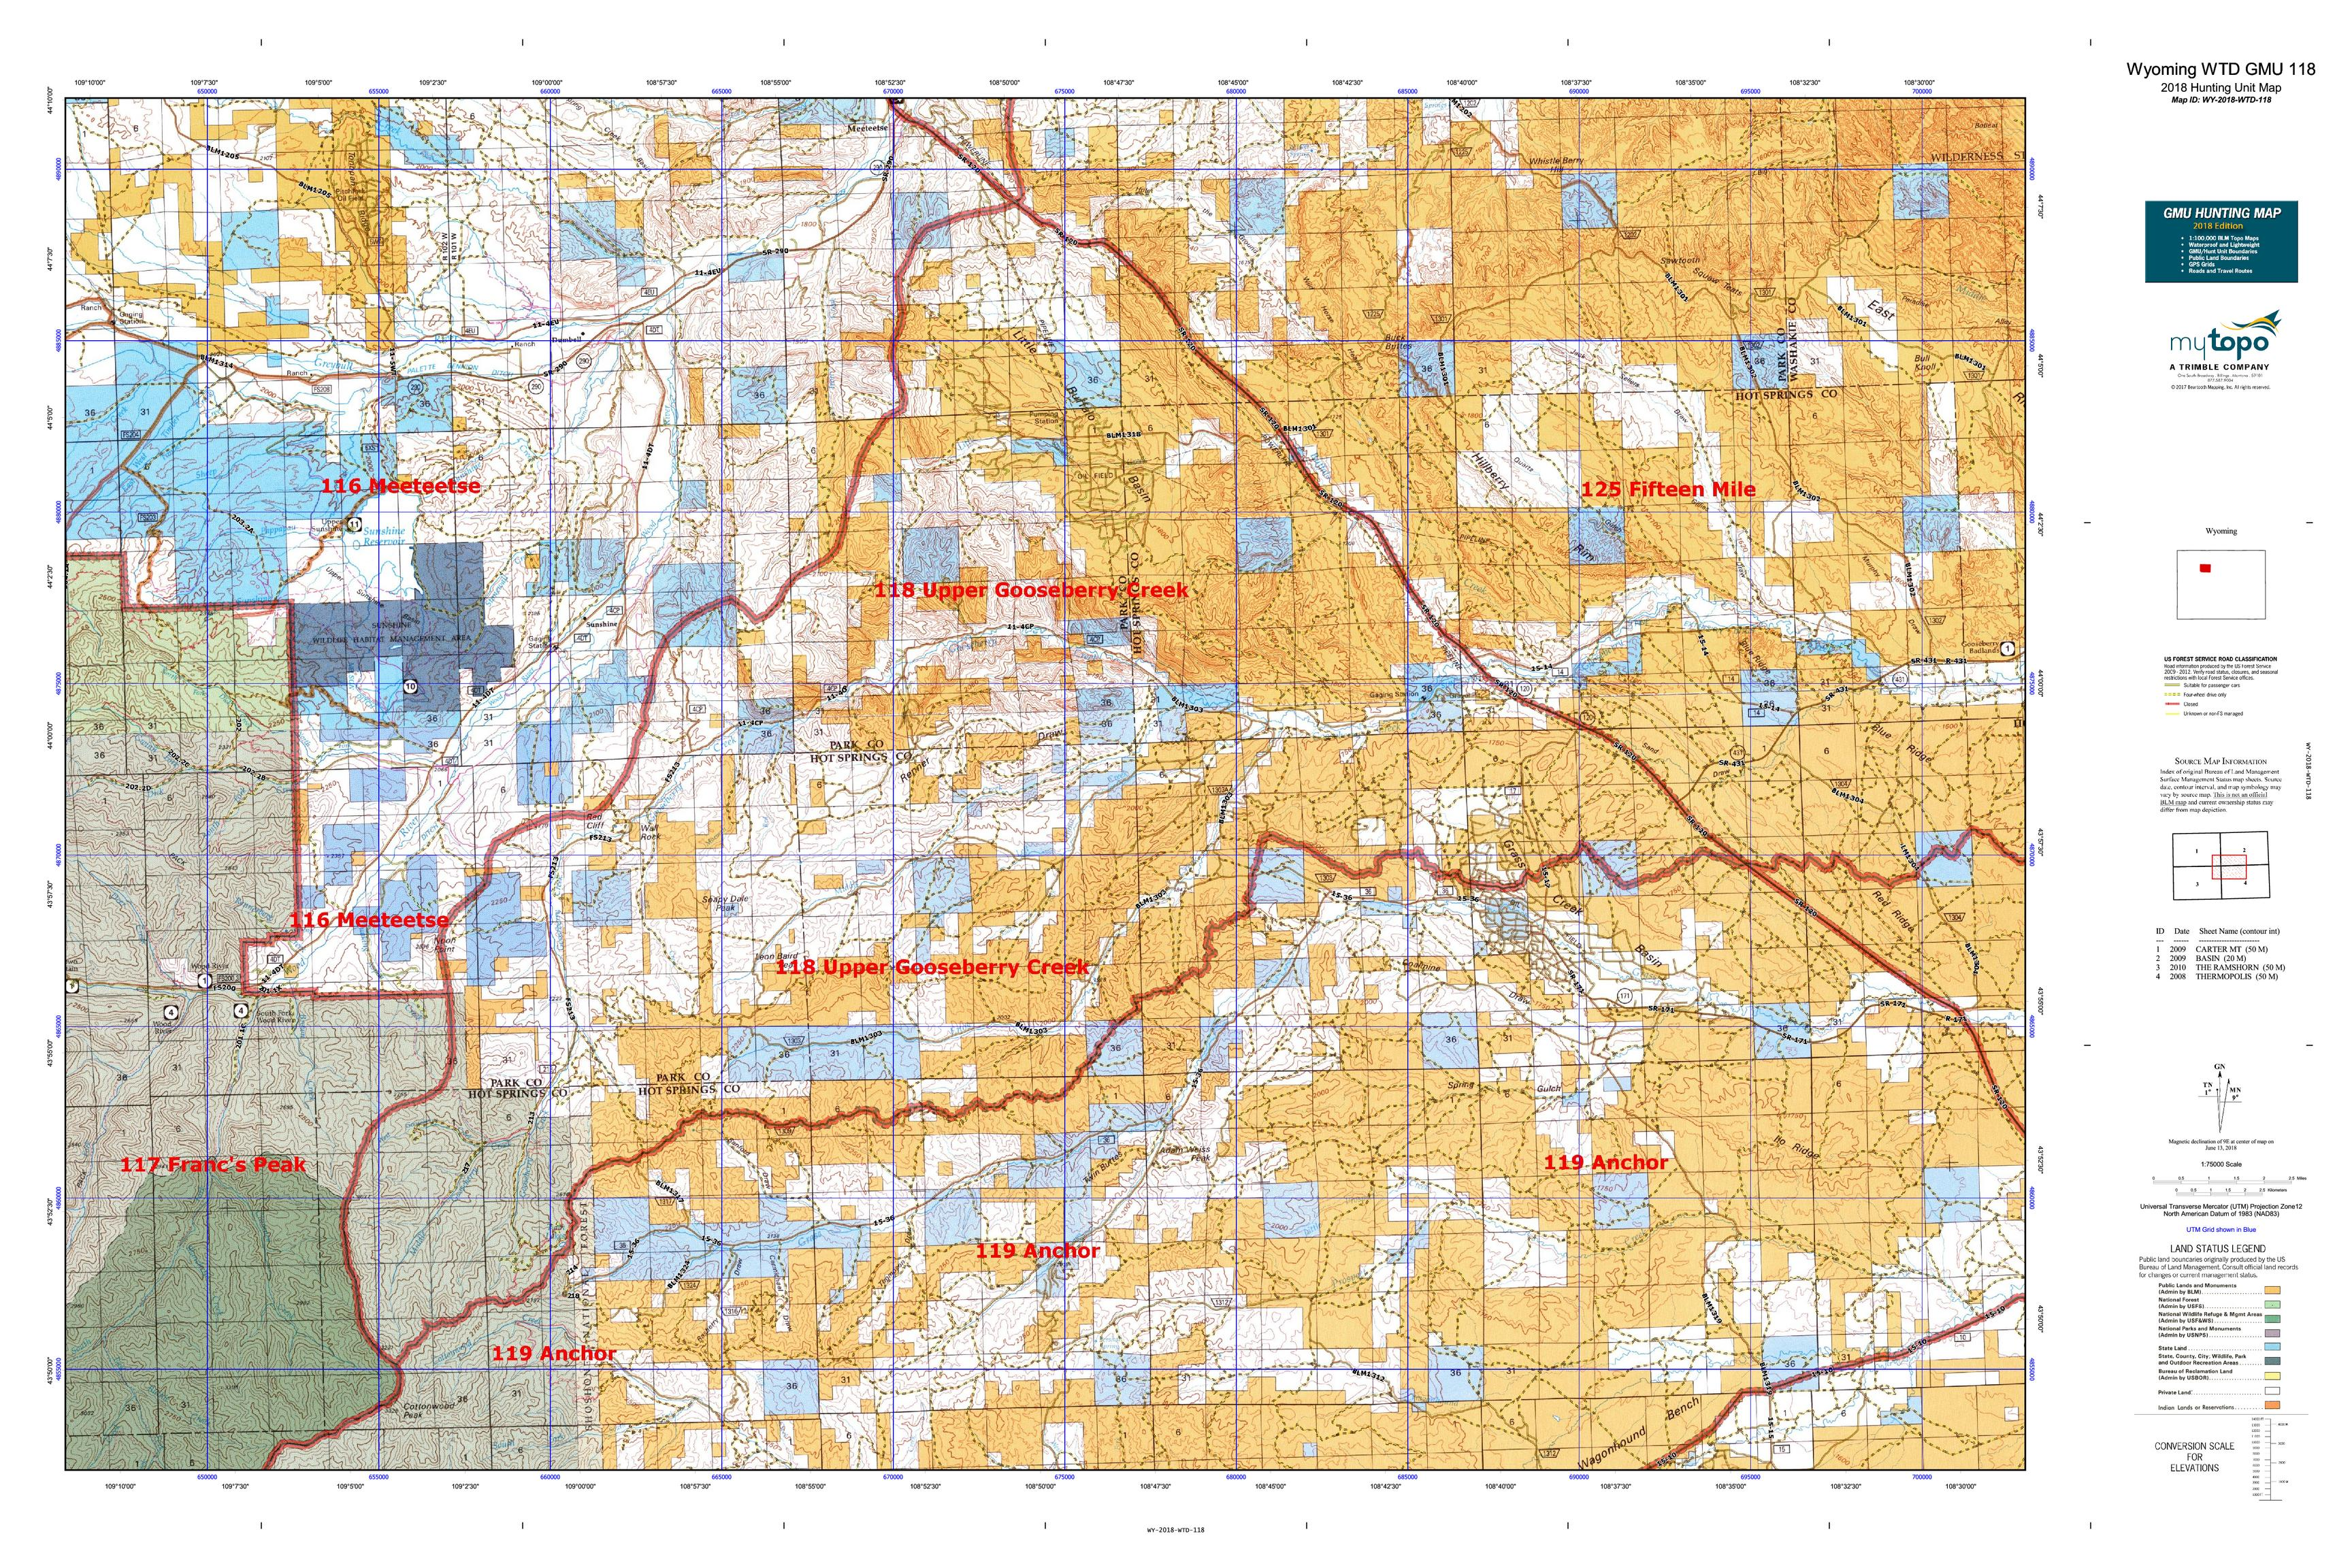 Wyoming WTD GMU 118 Map | MyTopo